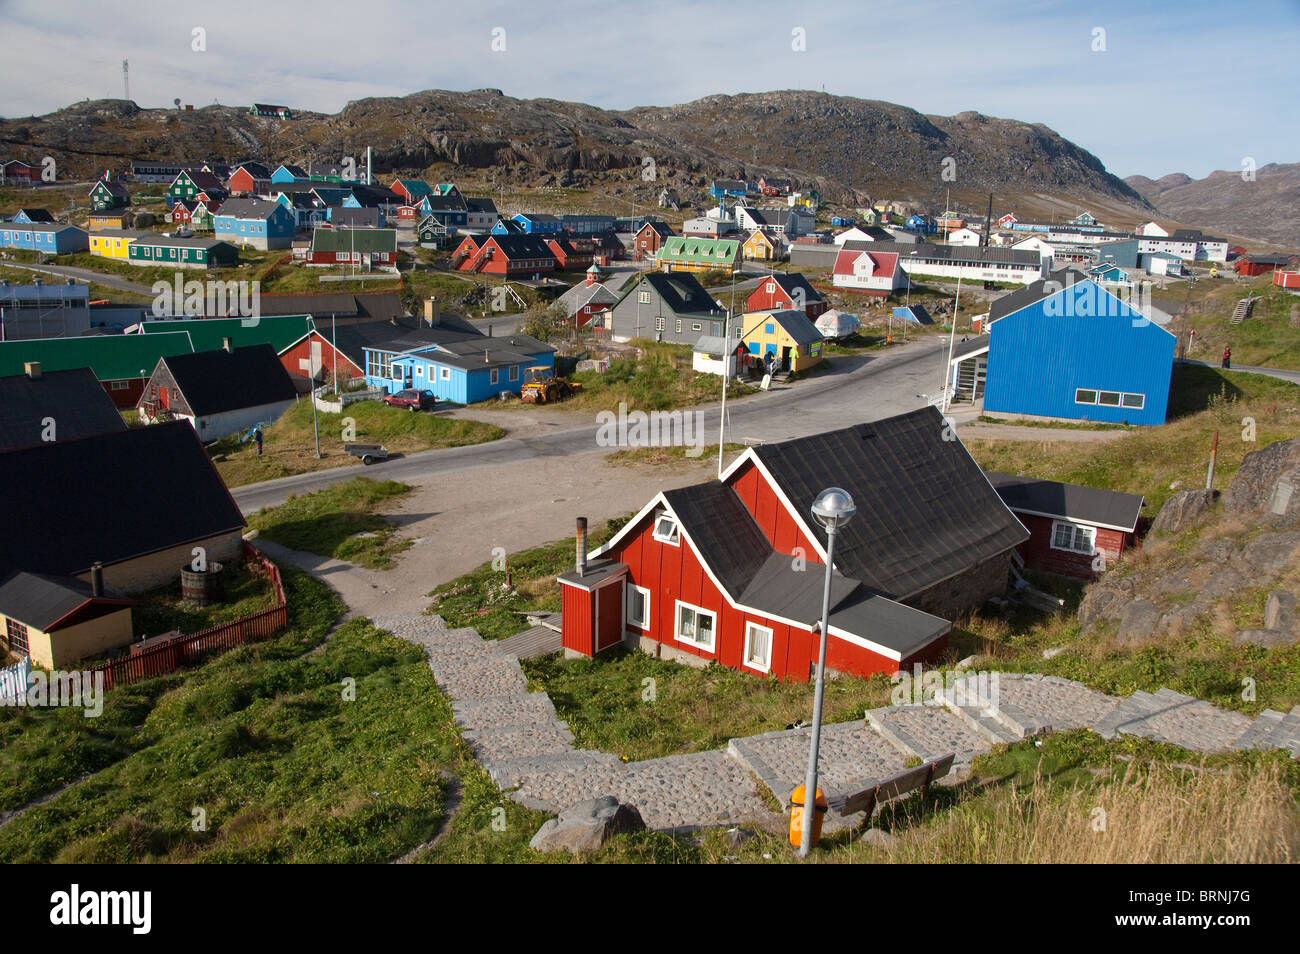 Greenland, Qaqortoq. South Greenland's largest town with almost 3,000 inhabitants. Overview of town with typical - Stock Image